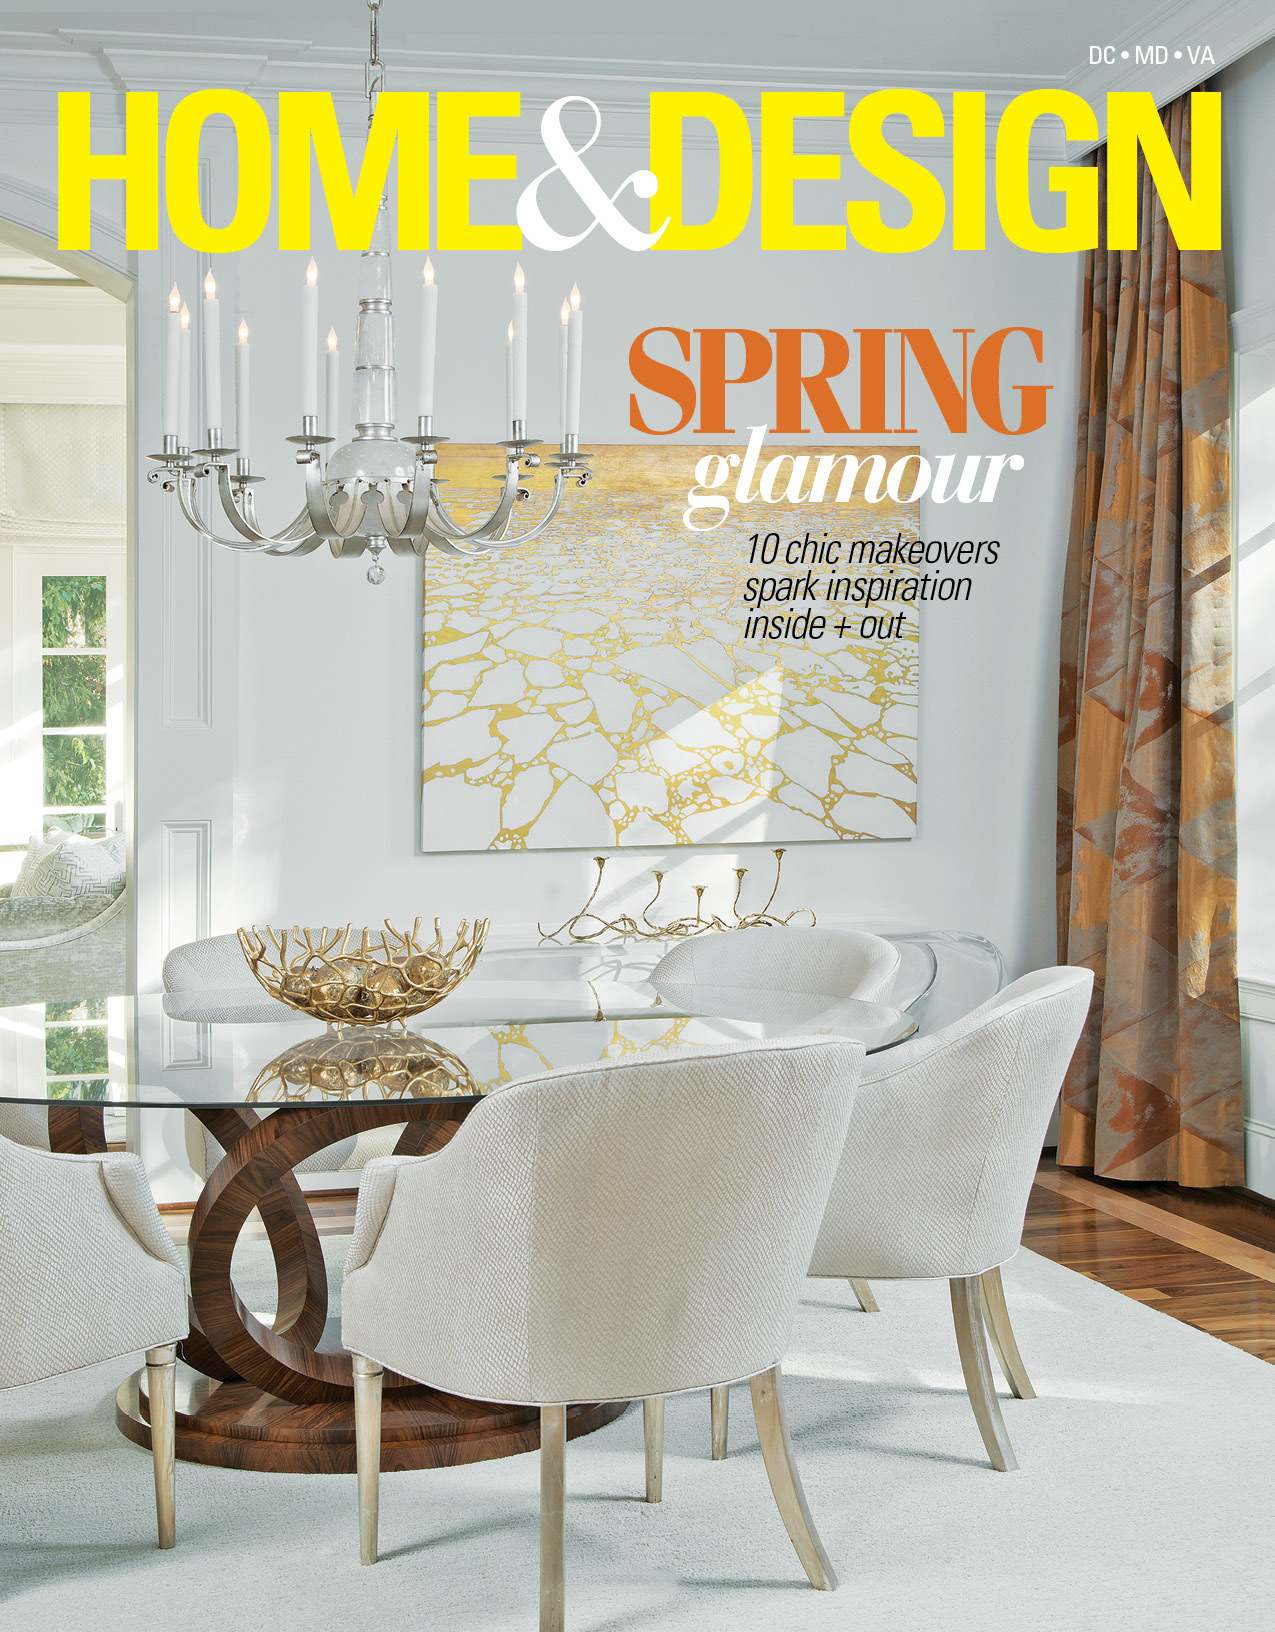 Paul Miller, interior designer published in Home & Design Magazine. Clean and Casual designed space for a young family living in Bluemont, VA.